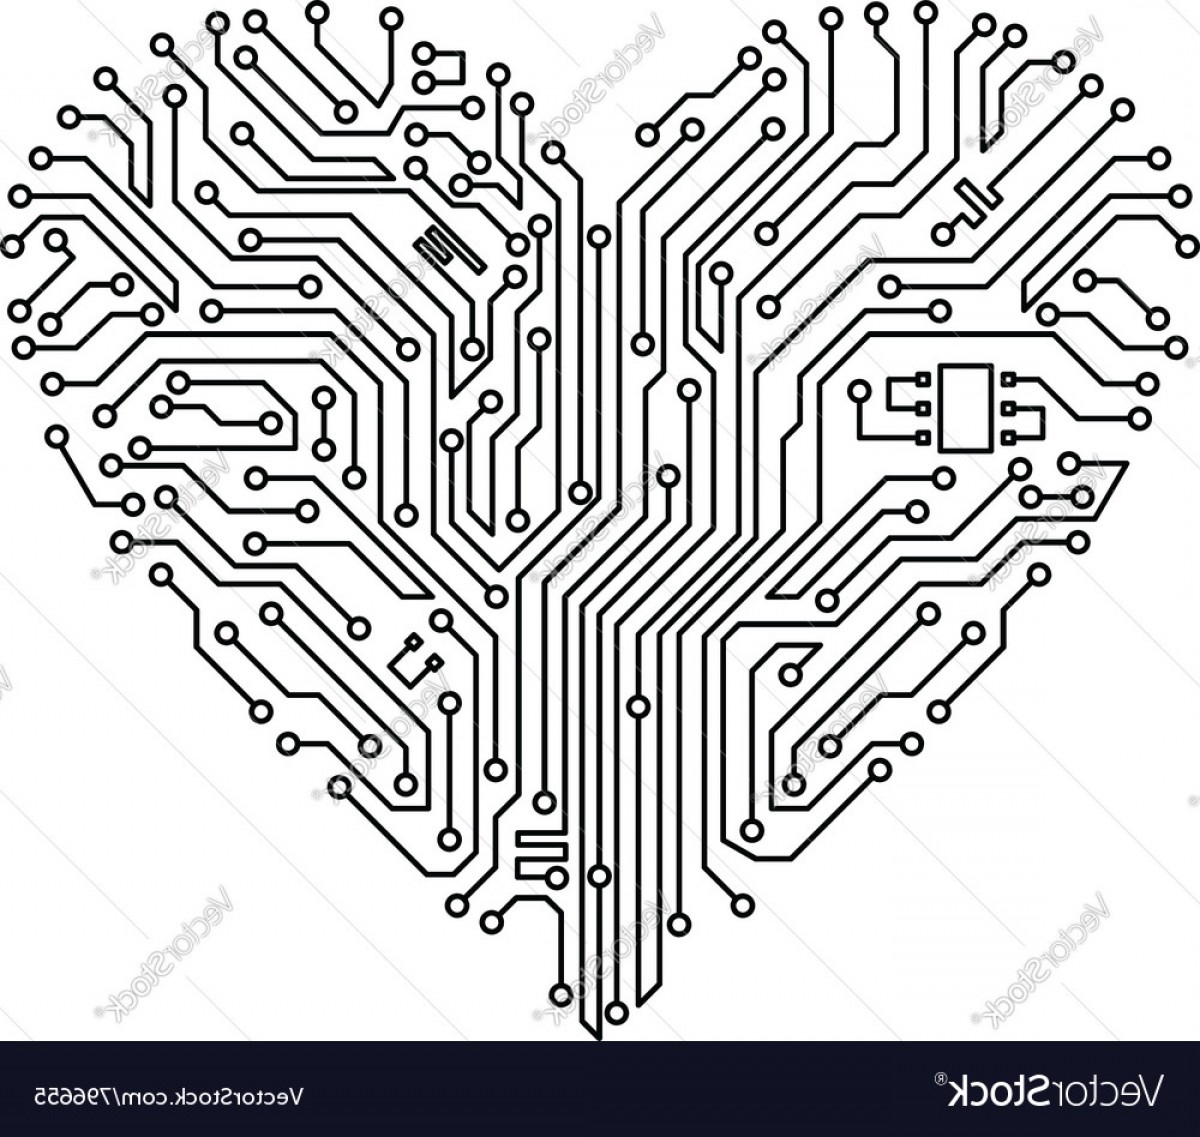 Motherboard Vector With A Heart: Computer Heart With Motherboard Vector